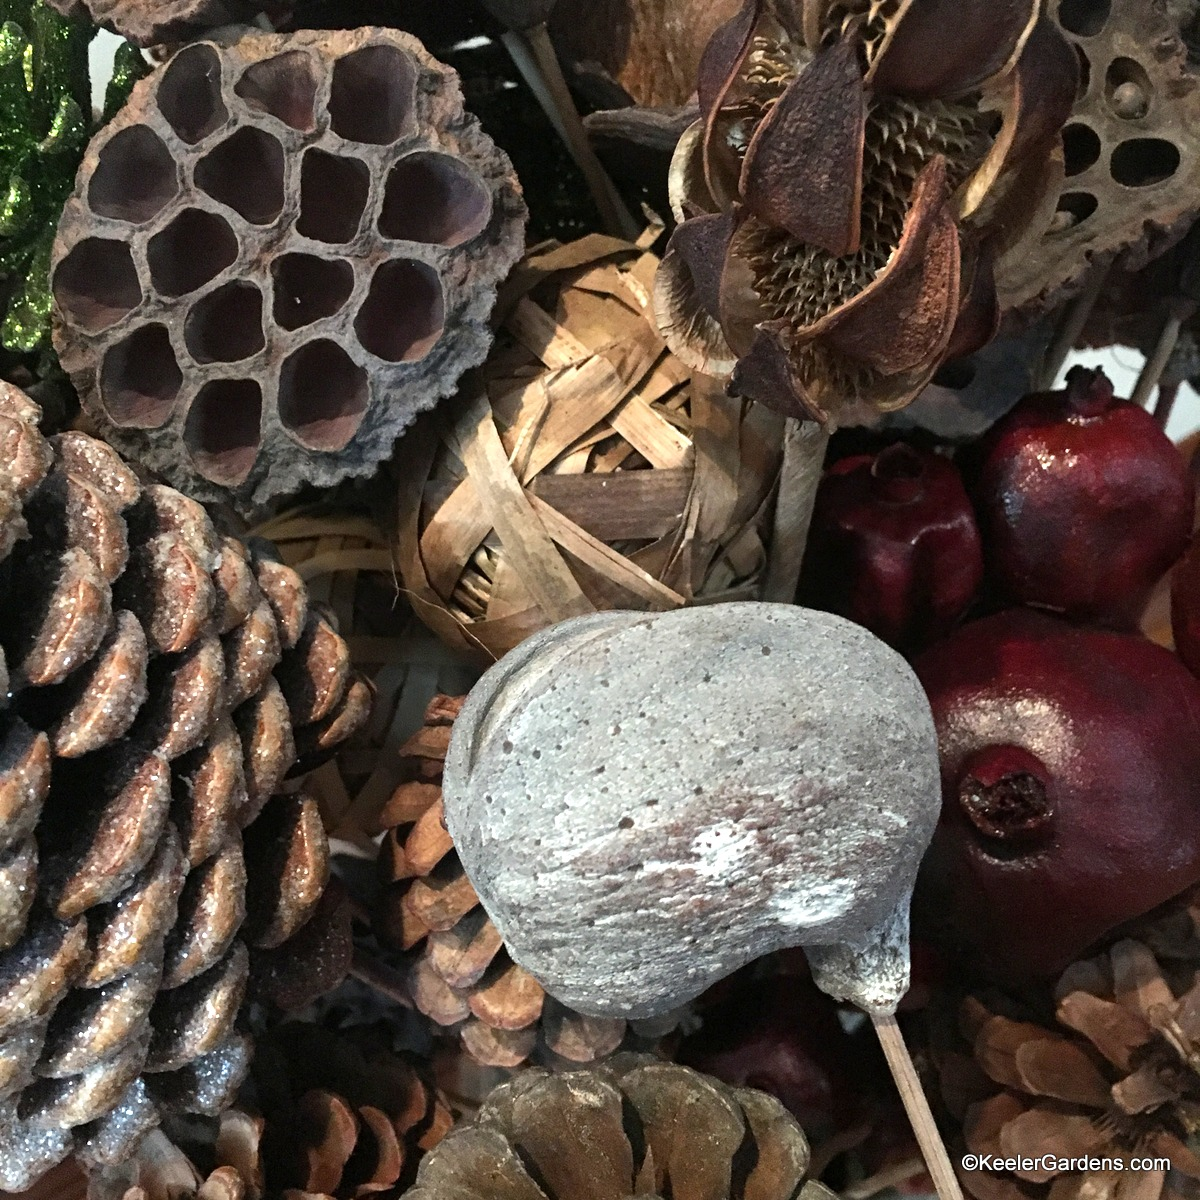 A multitude of accents are presented for a natural display including dried lotus flower seed pods, pine cones, and faux pomegranate.